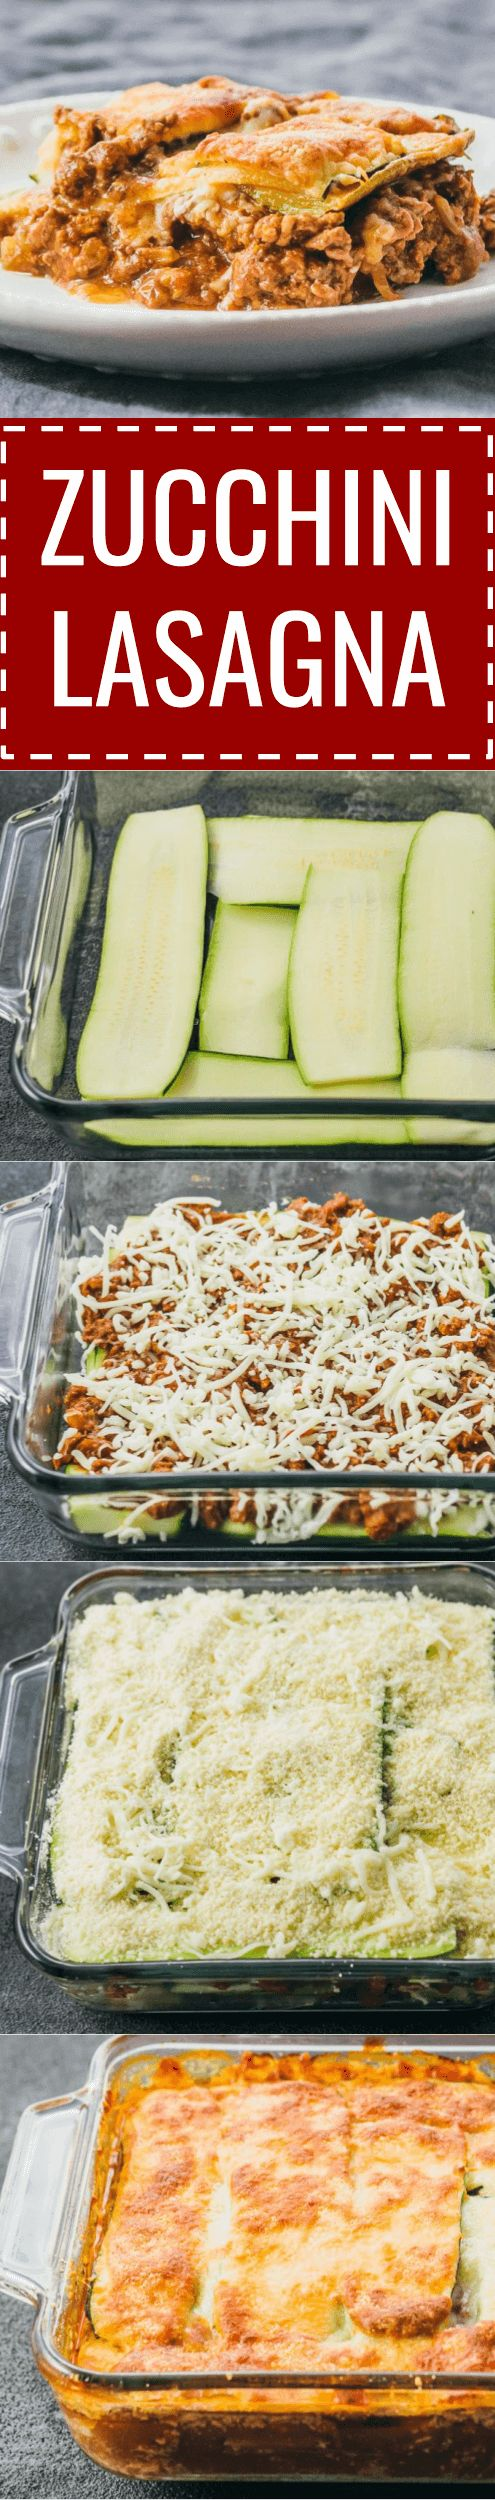 This easy zucchini lasagna is a great low carb and healthy alternative to your typical lasagna. keto / low carb / diet / atkins / meals / recipes / easy / dinner / lunch / foods / healthy / gluten free / easy / recipe / healthy / with meat / noodles / best / weight watchers / clean eating / no ricotta / shredded / beef / bake / make ahead / simple / mozzarella / calories / bolognese / roasted / lattice / dinners / dishes / onions #lasagna #healthy #dinner #lowcarb